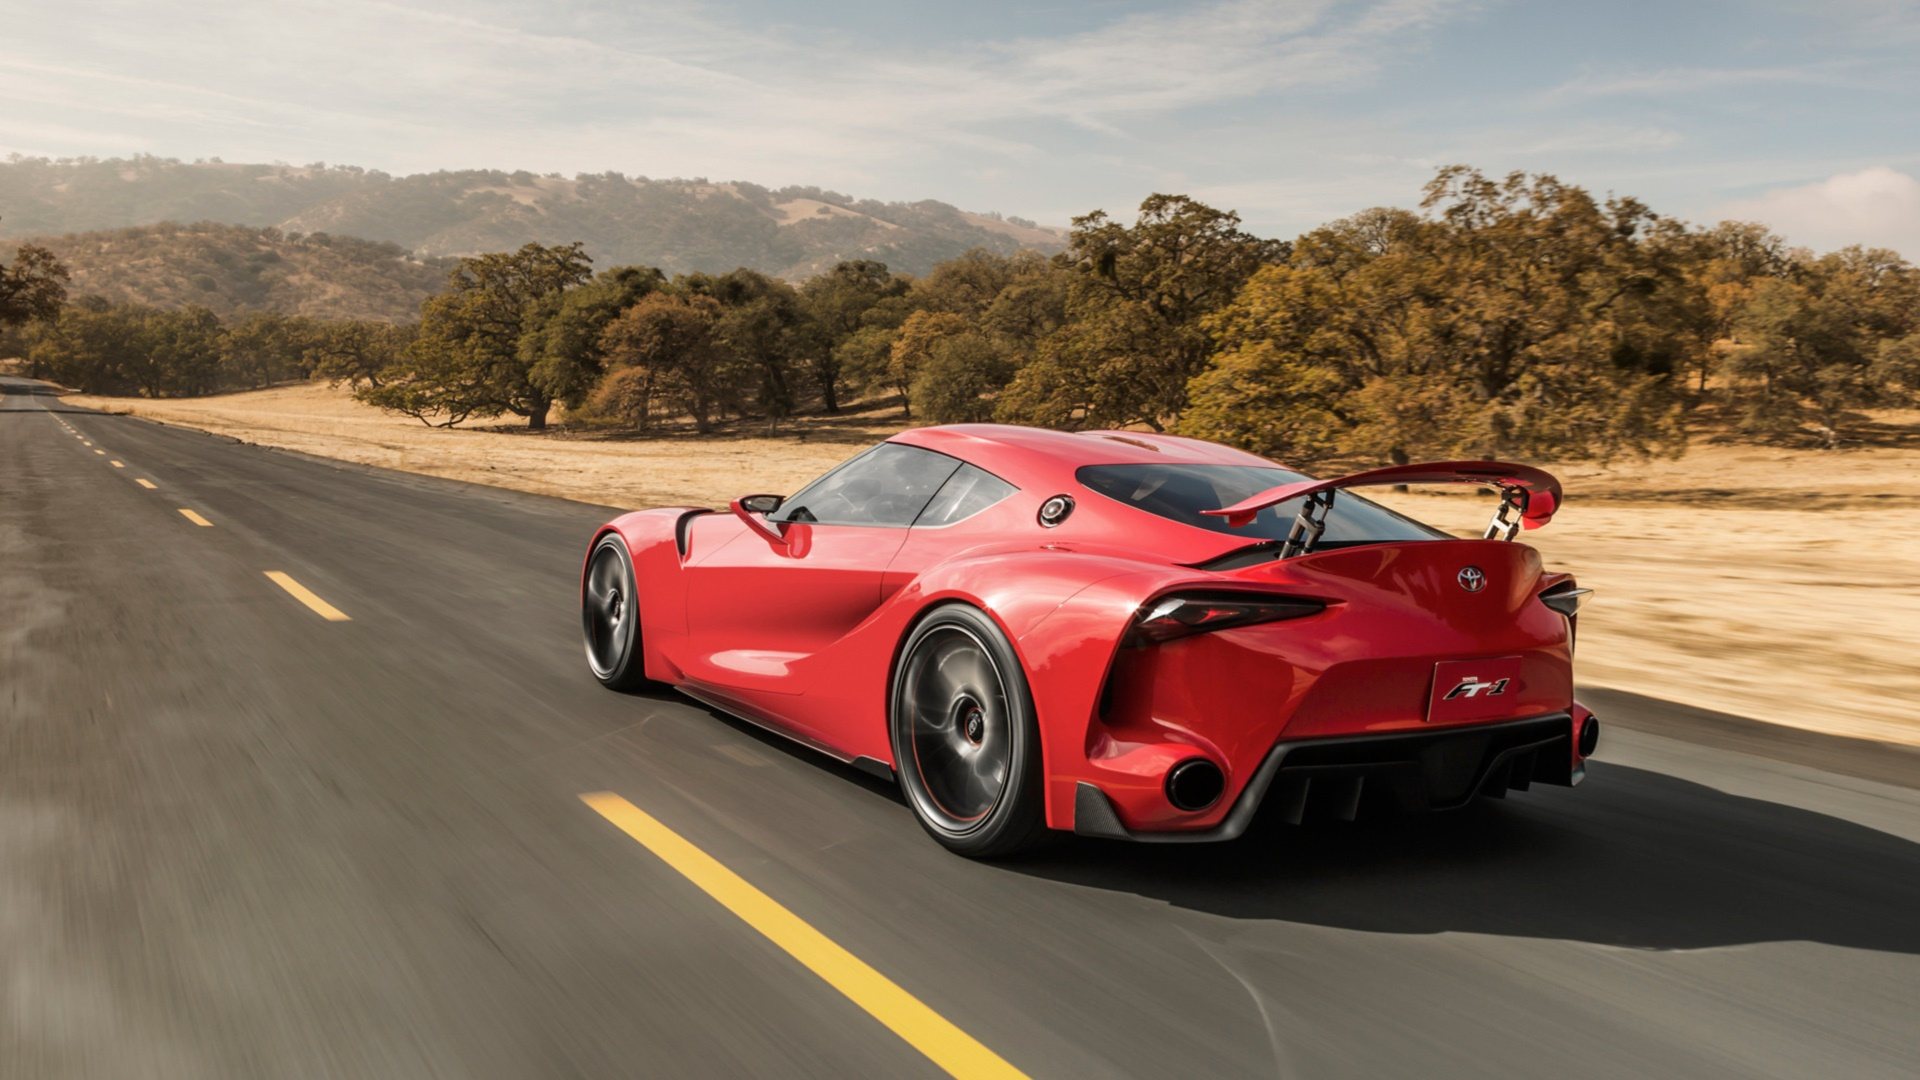 Slammed Car Wallpaper 19 2014 Toyota Ft 1 Concept Hd Wallpapers Backgrounds